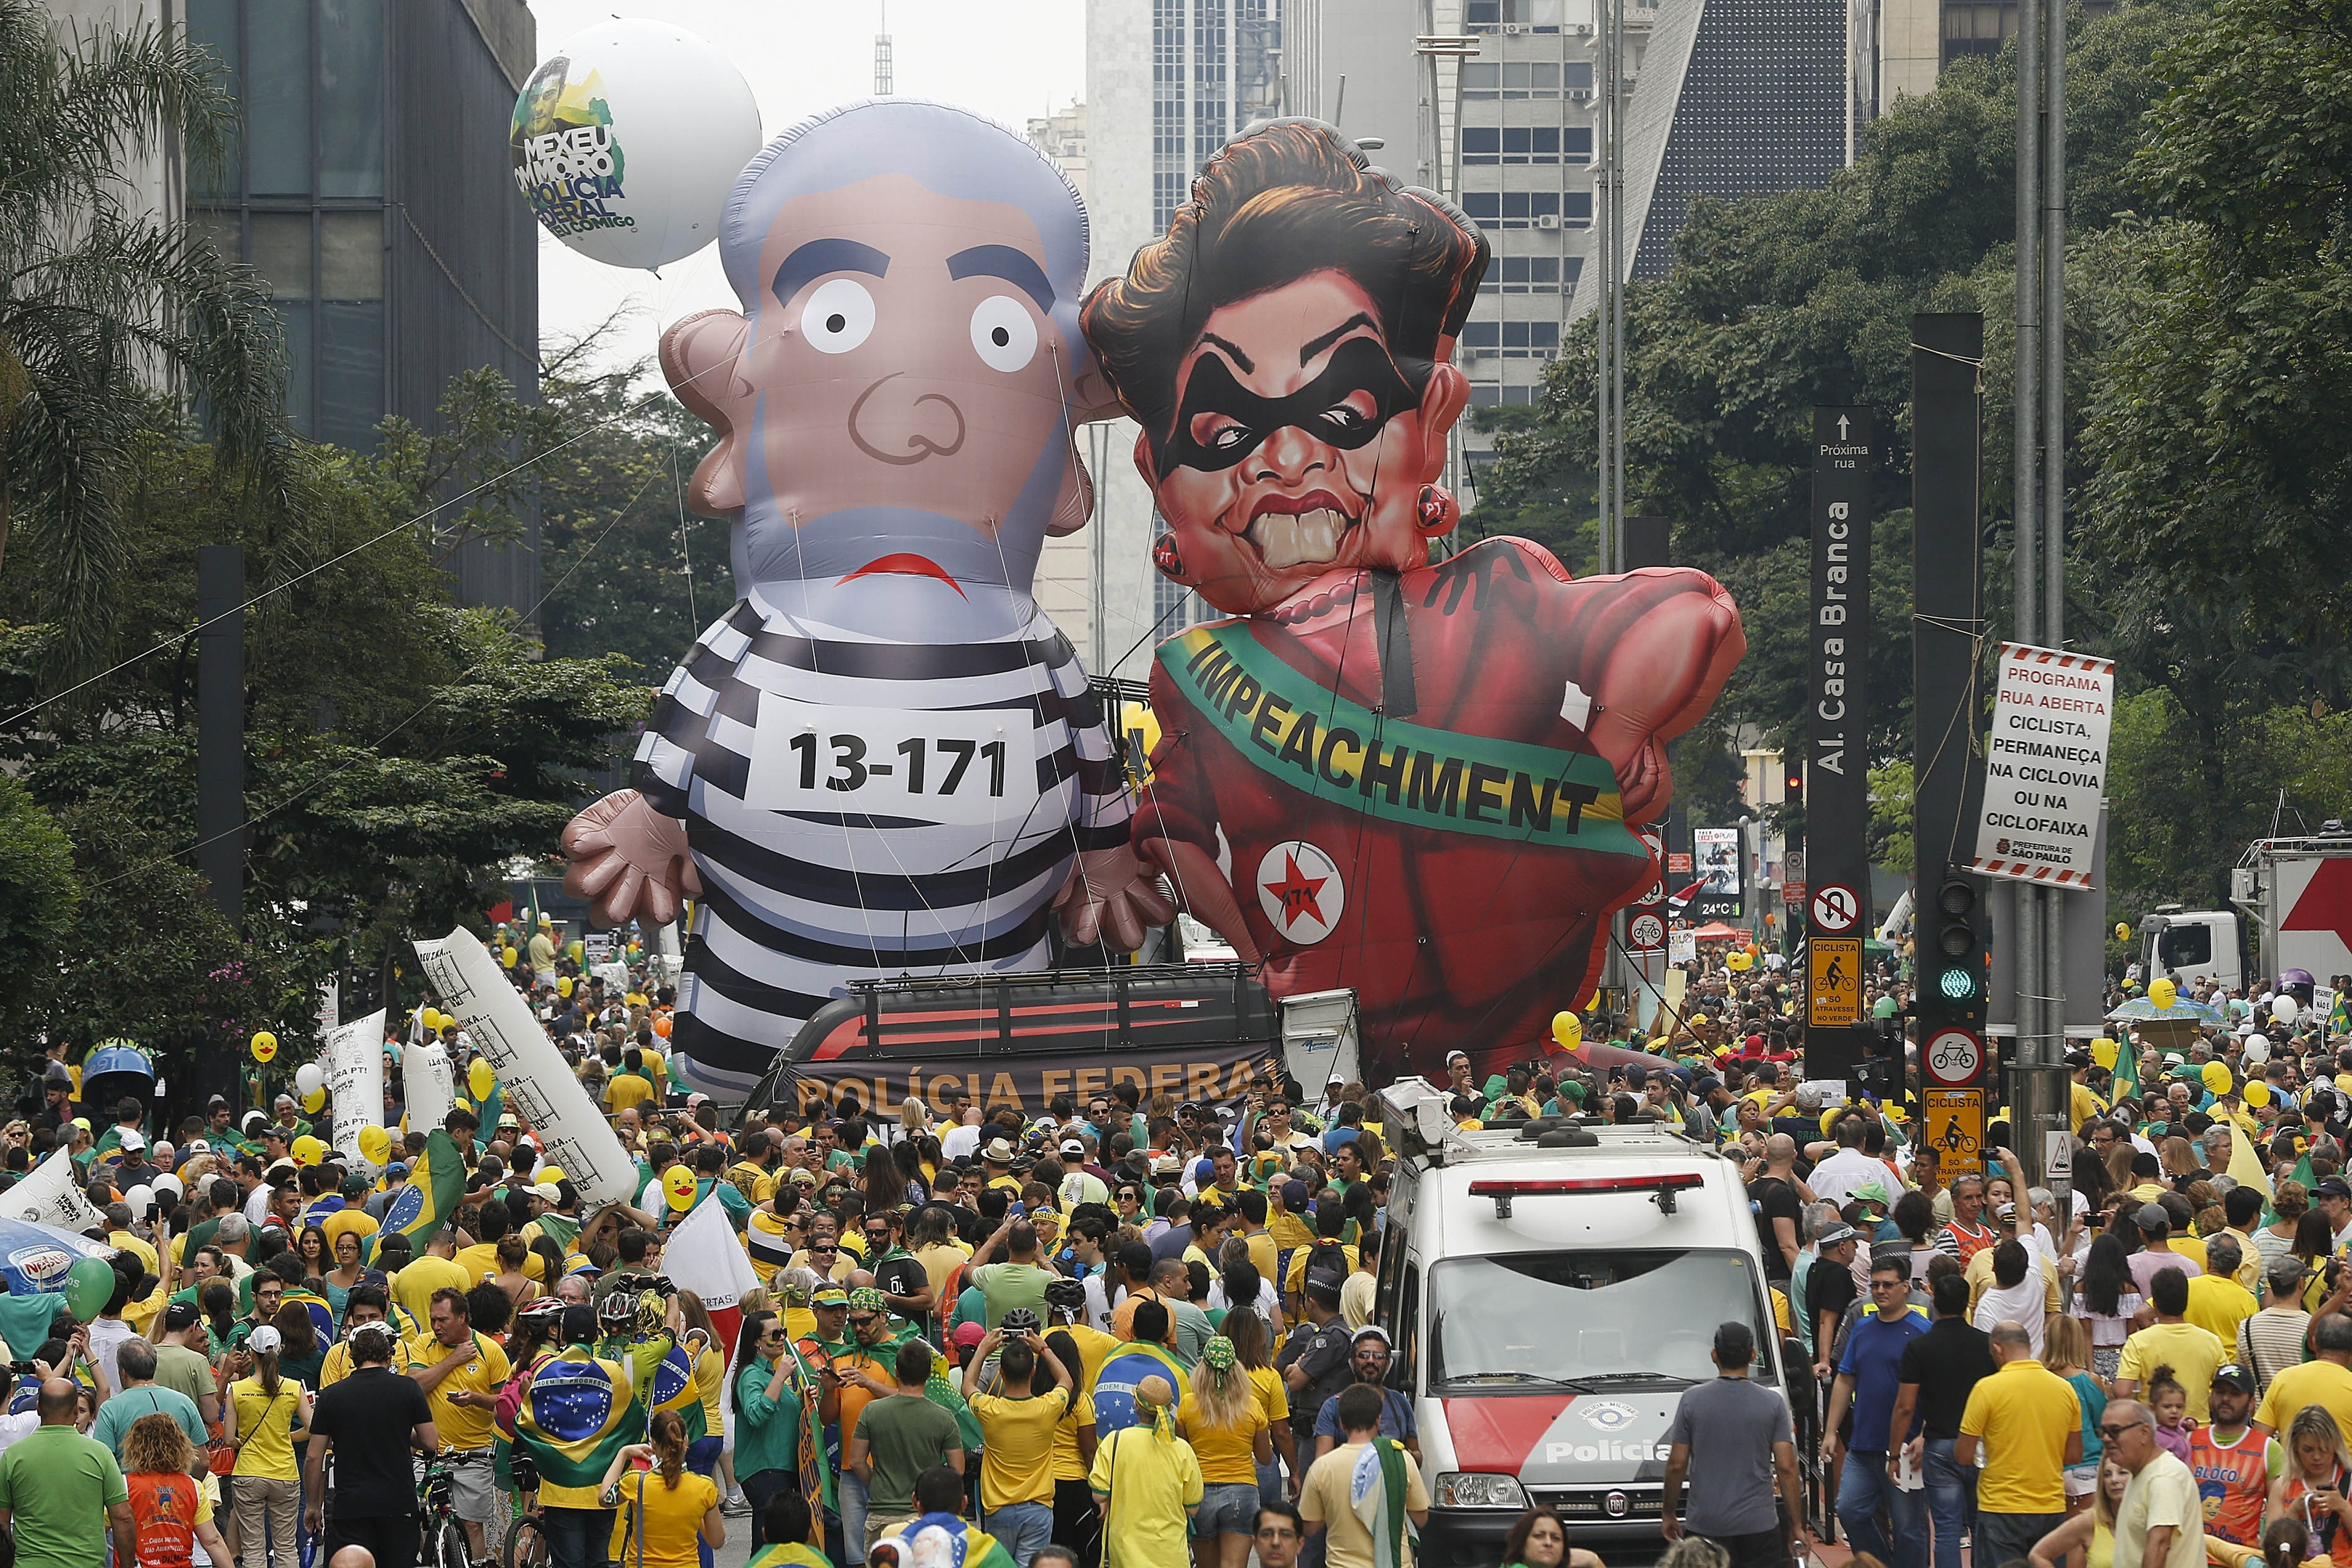 Demonstrators parade in Brazil over political corruption frustrations